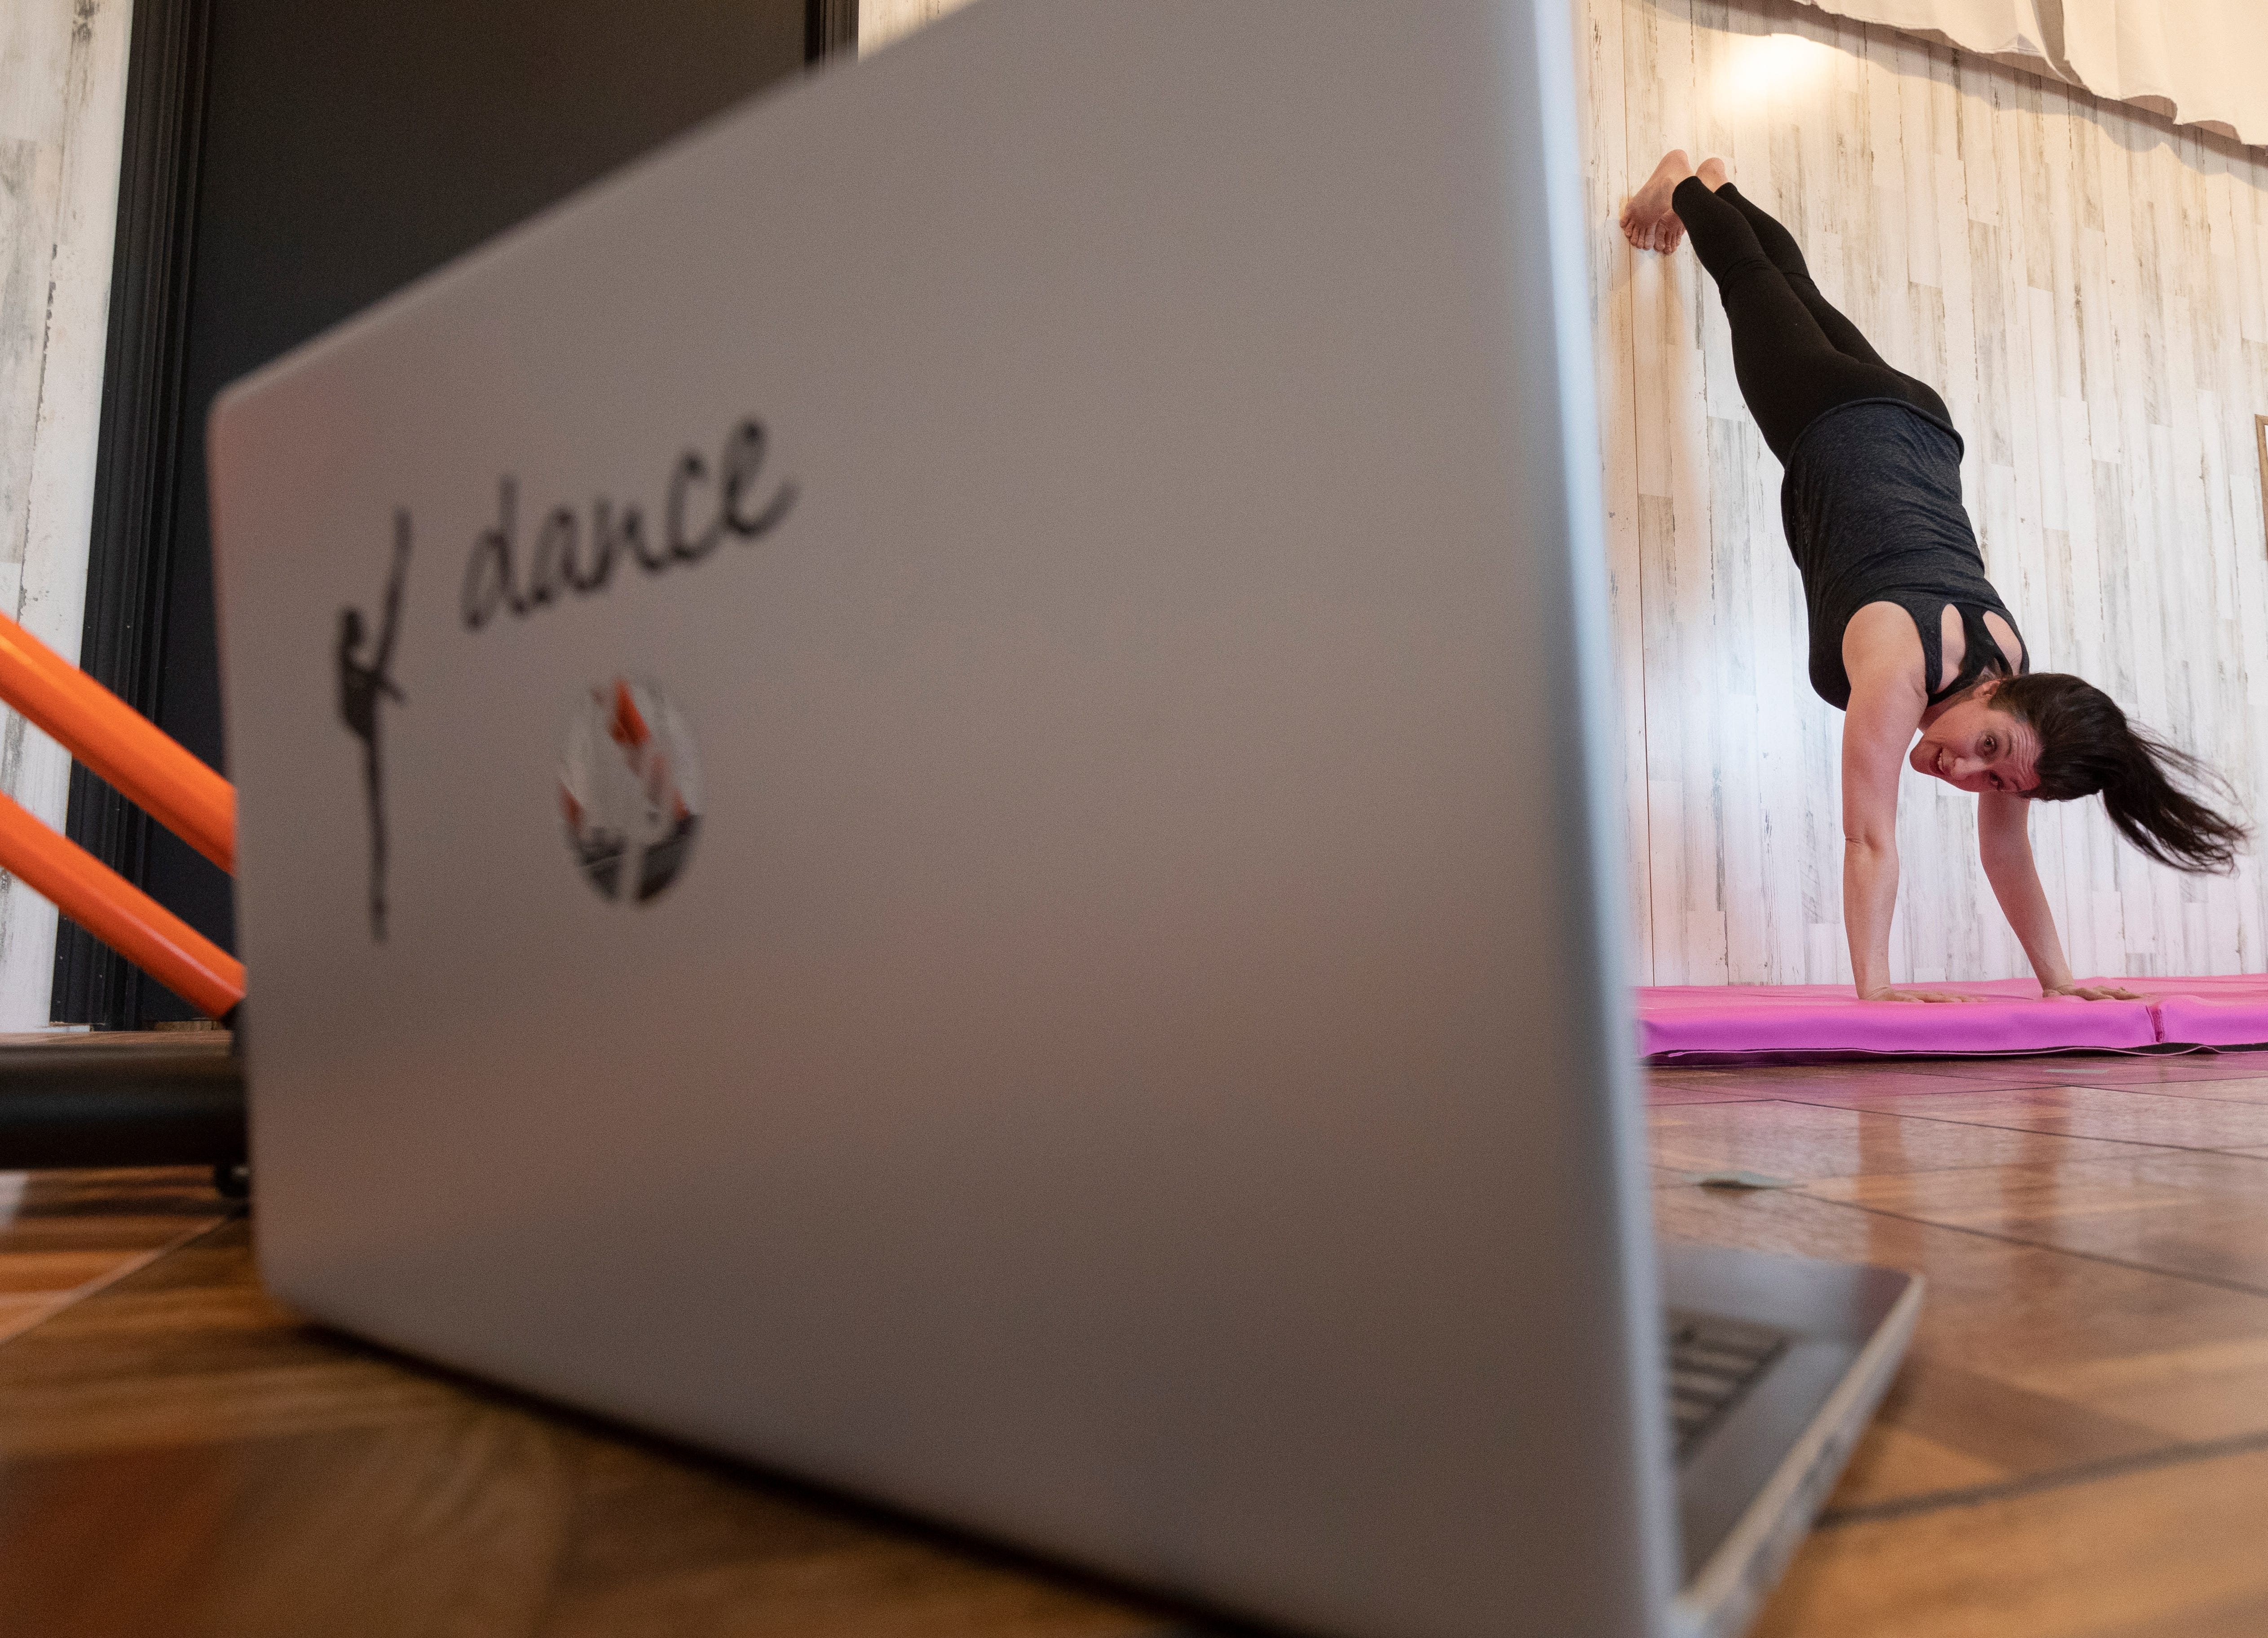 Holly Rohde teaches an acrobatic dance class via Zoom at her recently opened dance studio, Uplifting Movement and Fitness, in Loyal. Rohde opened her business a week before the state-ordered shutdown. Since then she has been teaching some classes online in the studio she created from a defunct gas station.